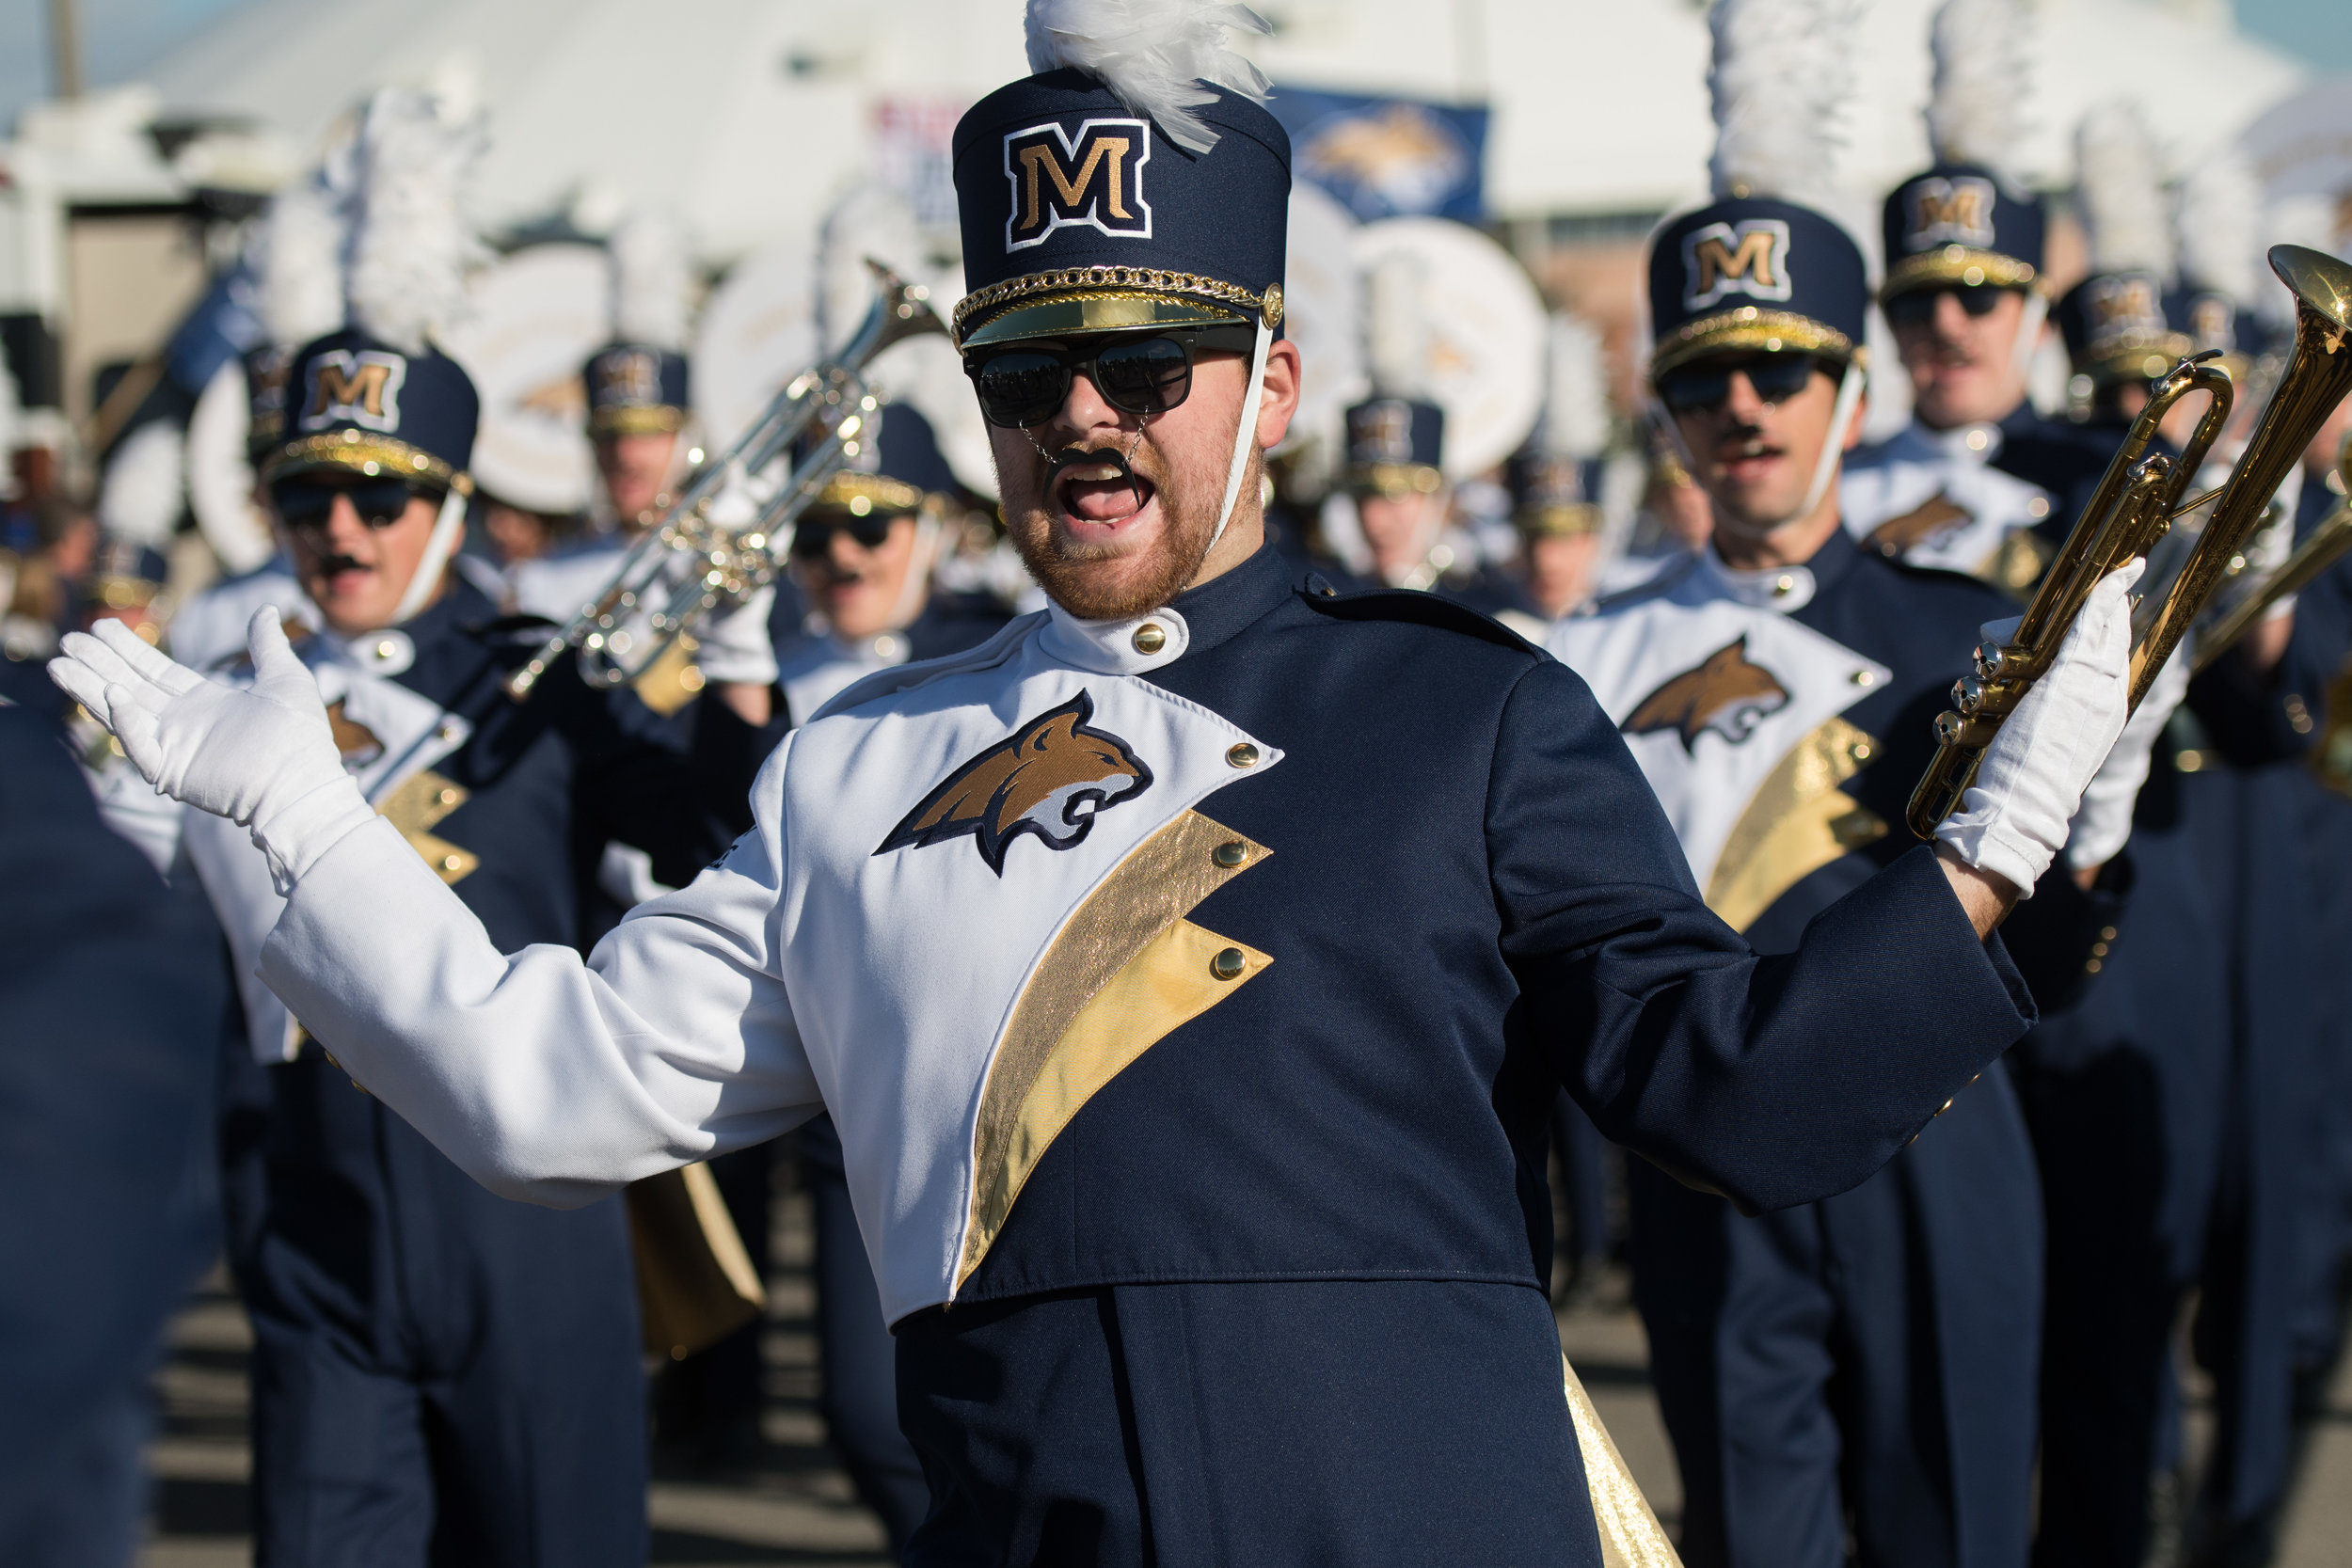 Spirit of the West trumpet player Jimmy Kelsey participates in the Bobcat Prowl prior to a football game in Bozeman, Mont. Saturday, Oct. 07, 2017.